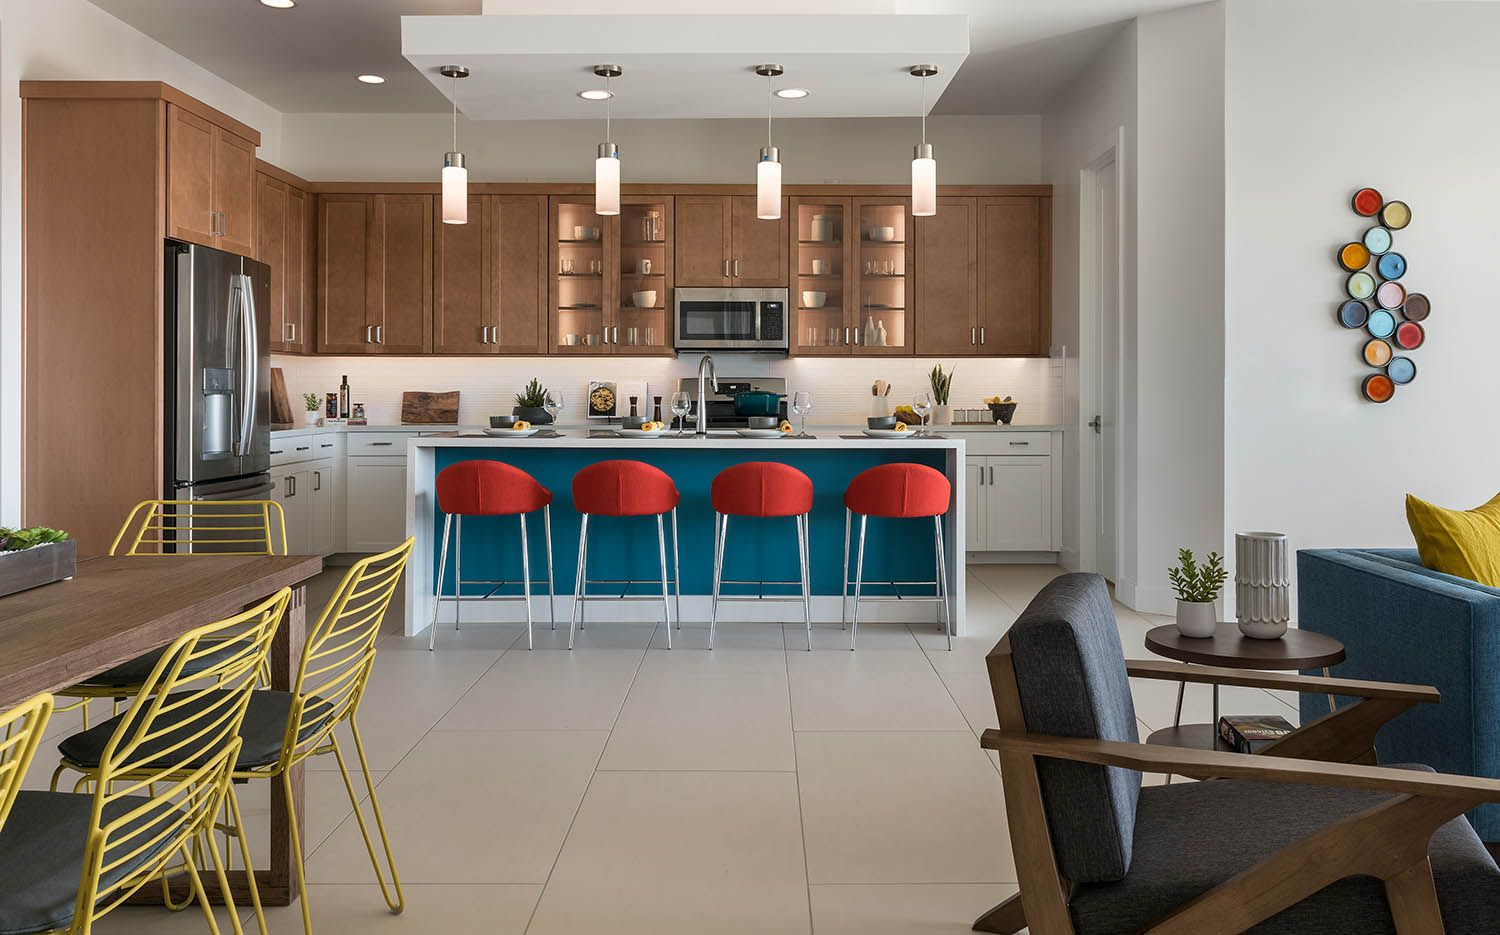 Kitchen featured in the Loma Plan 2 By Maracay Homes in Phoenix-Mesa, AZ